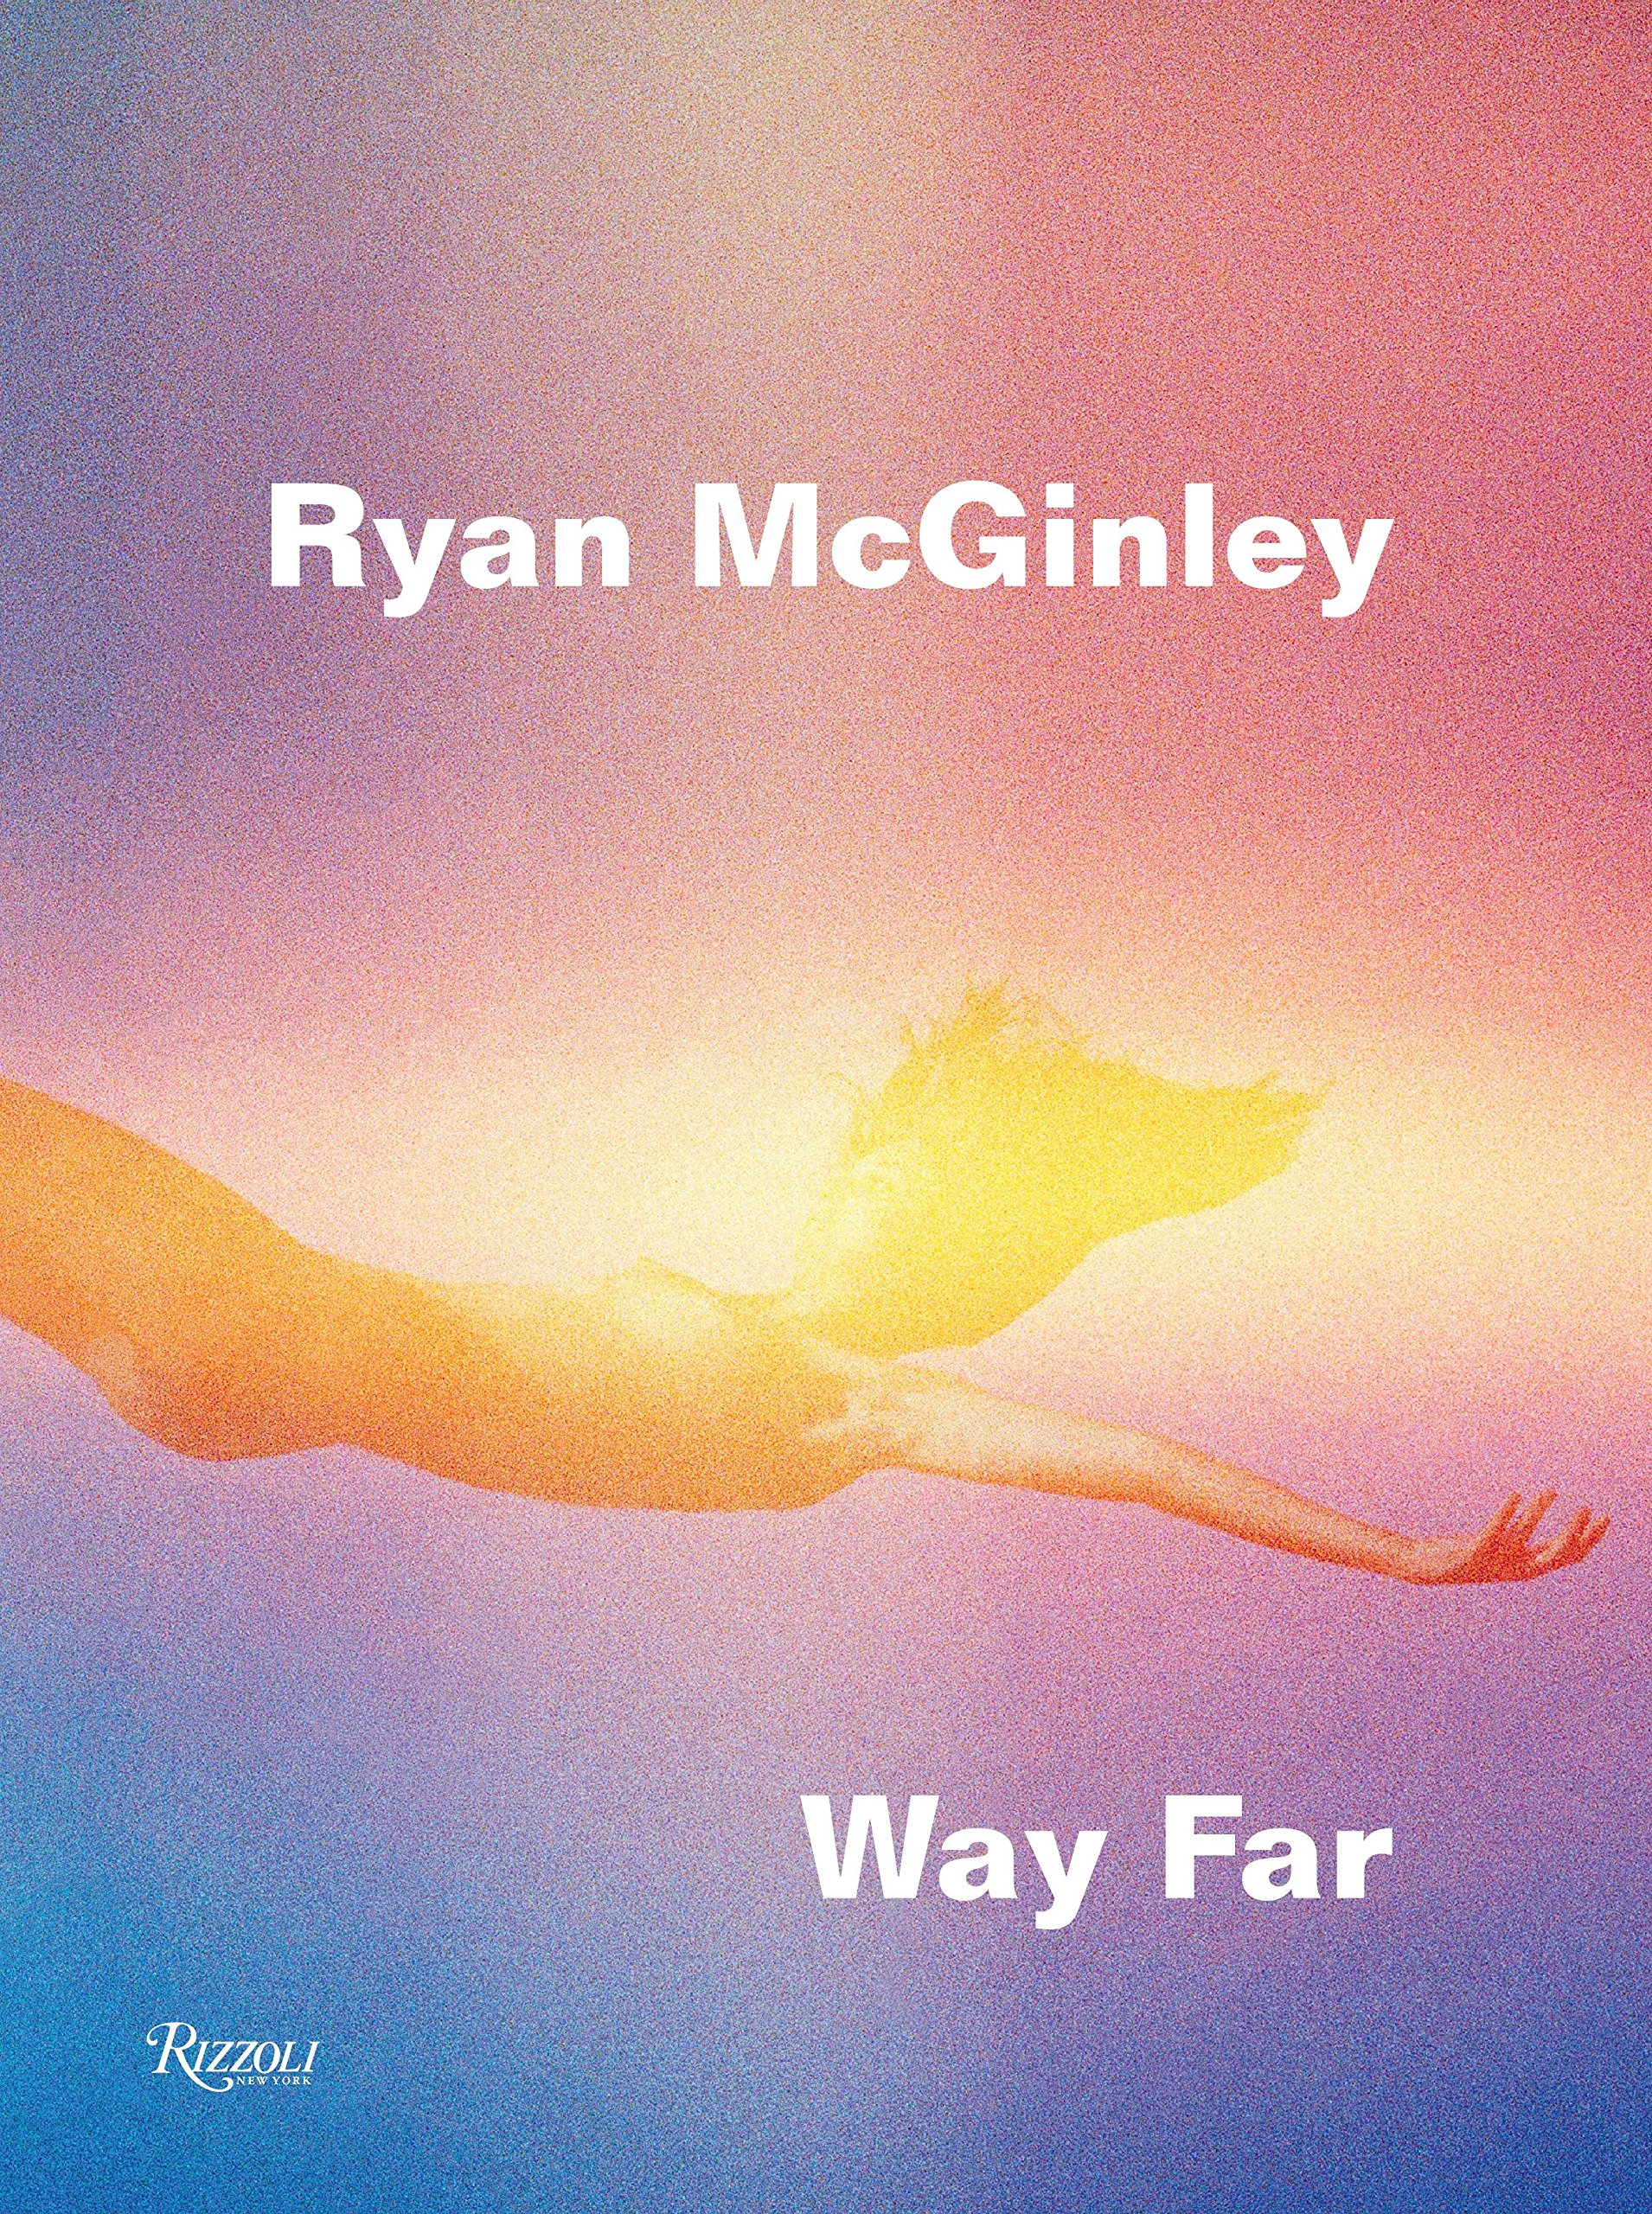 Behind The Artwork - Un approfondimento su Ryan McGinley | Collater.al 5